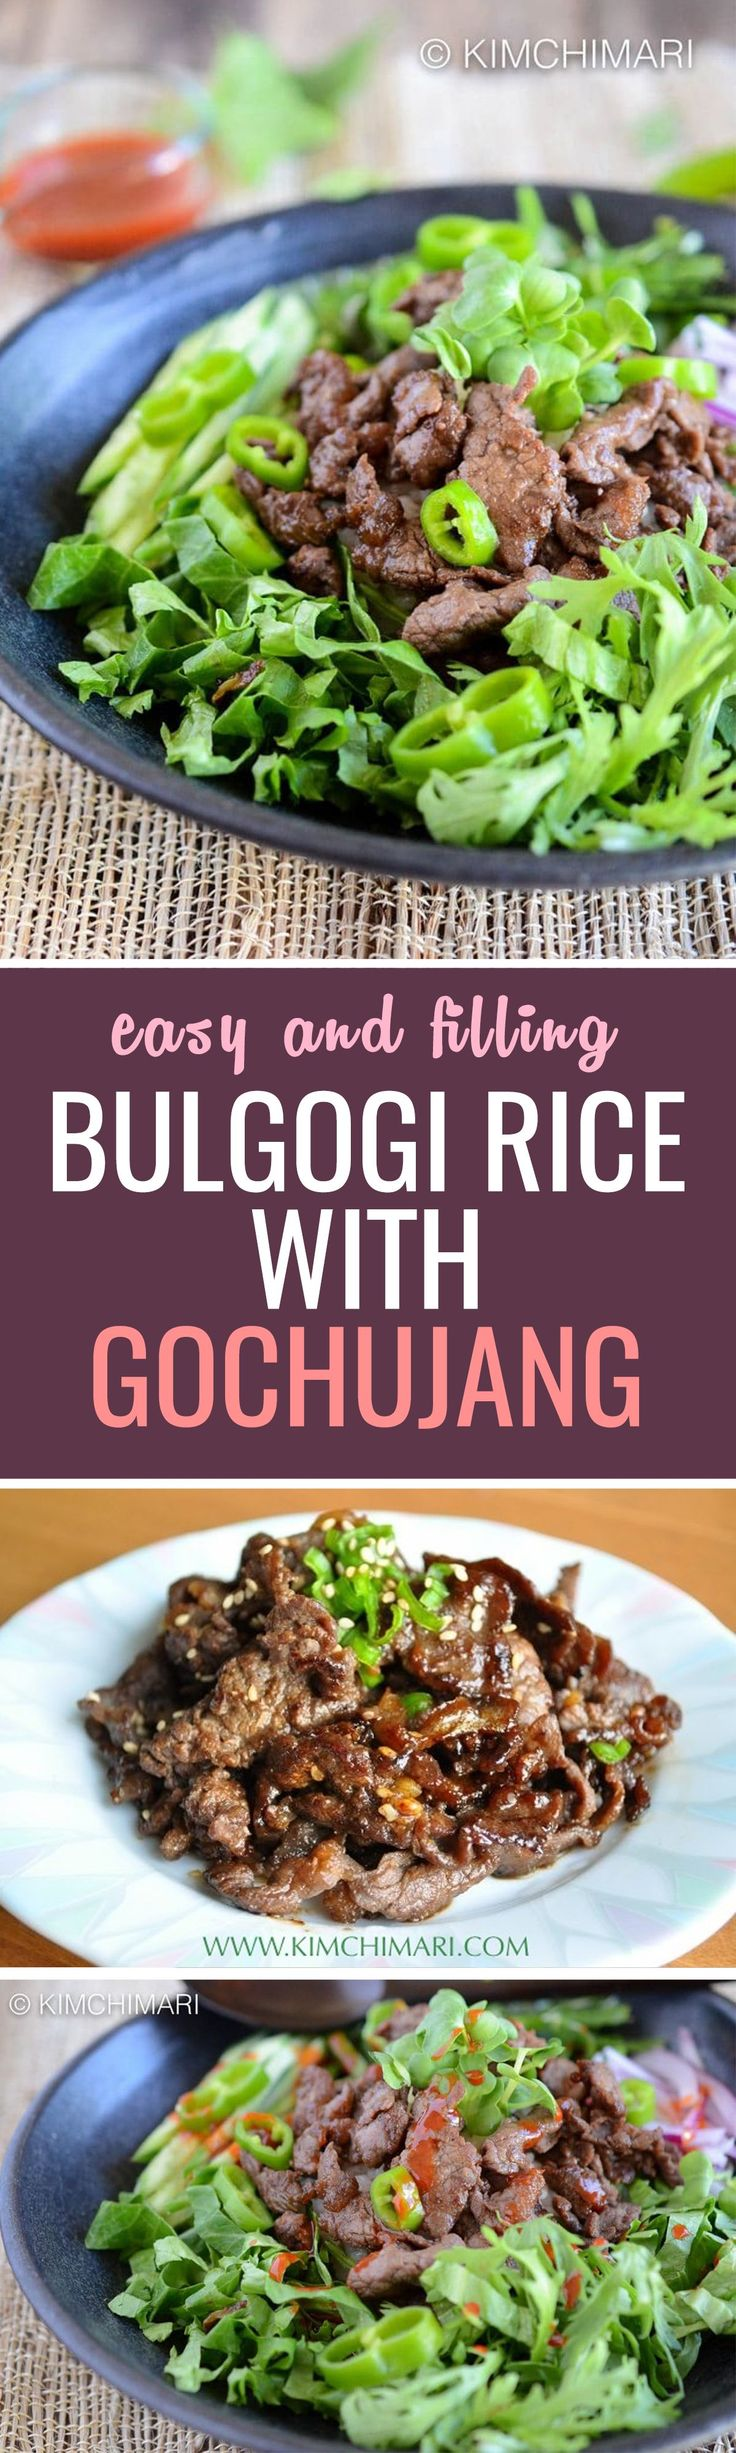 121 best korean food meats images on pinterest bar grill bbq bulgogi rice bowl with lots of korean greens forumfinder Image collections